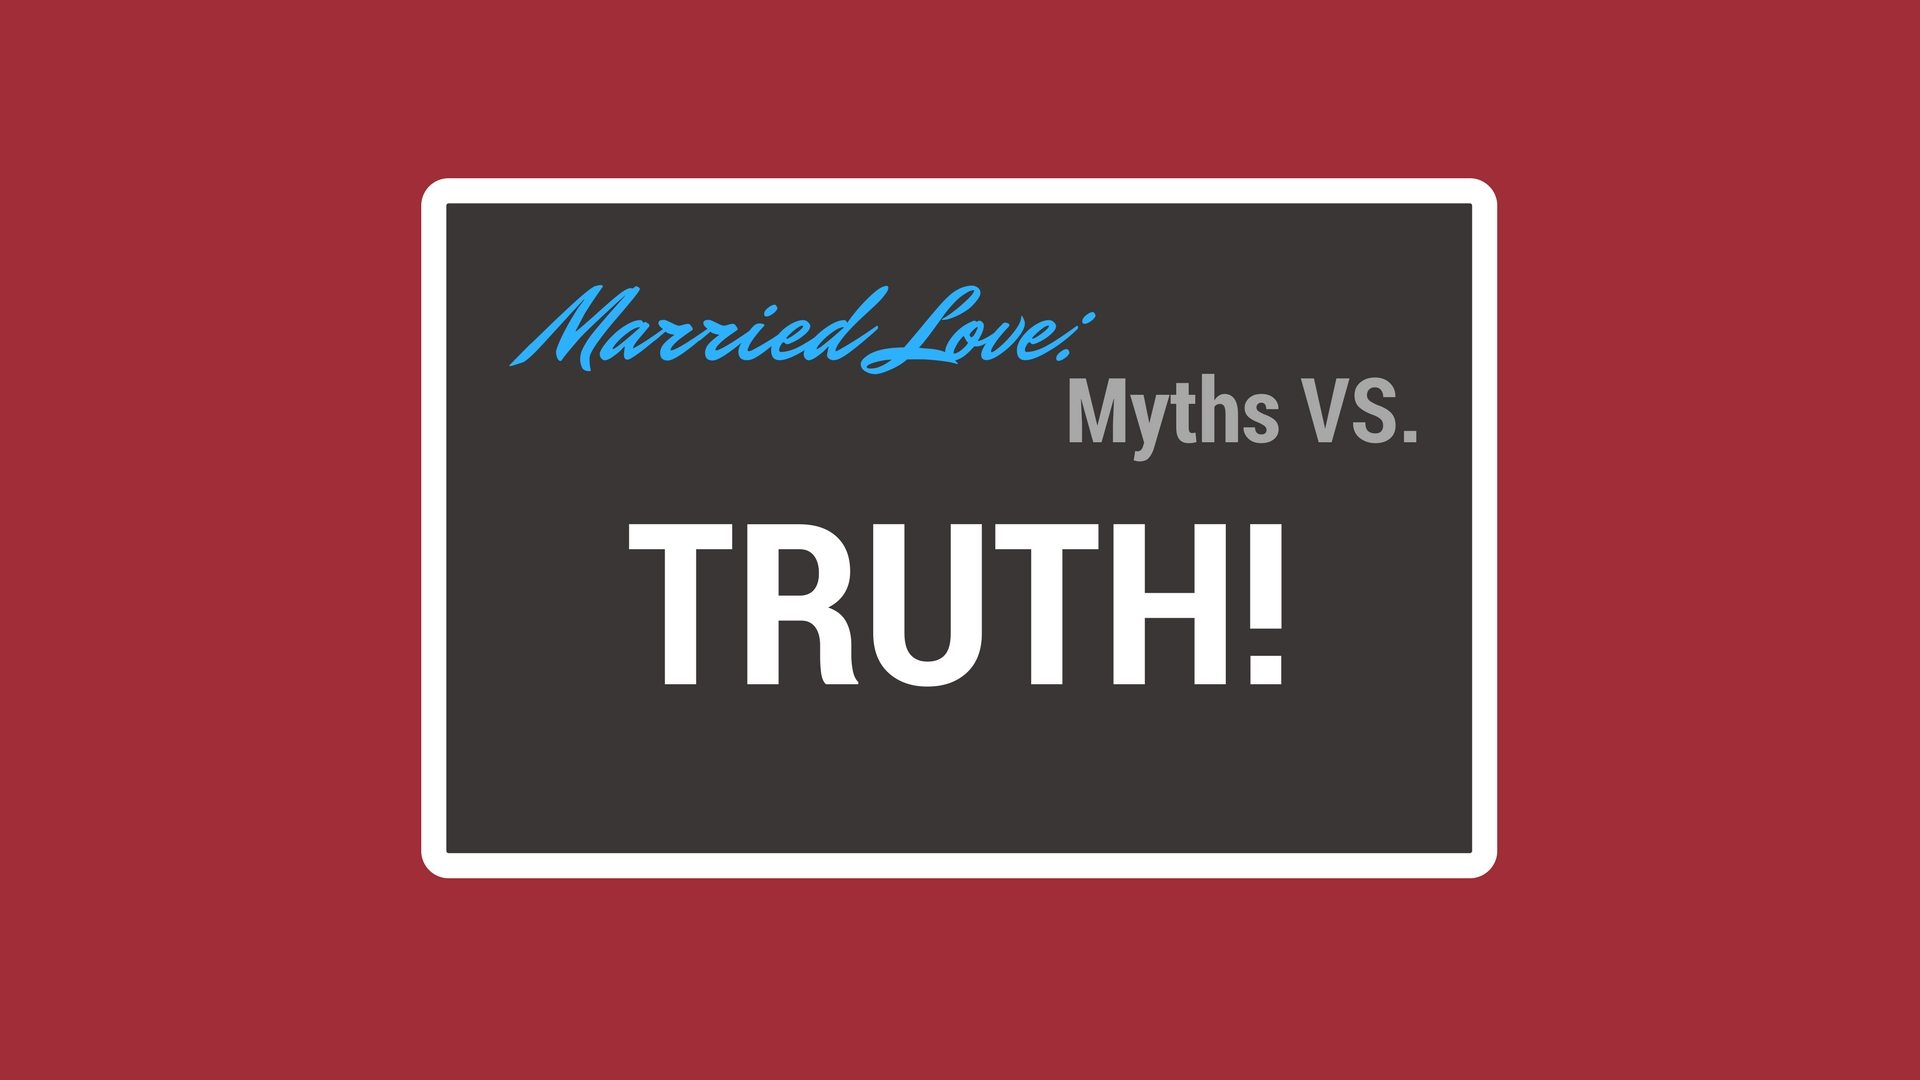 Married Love Myths pt 2 - Canva